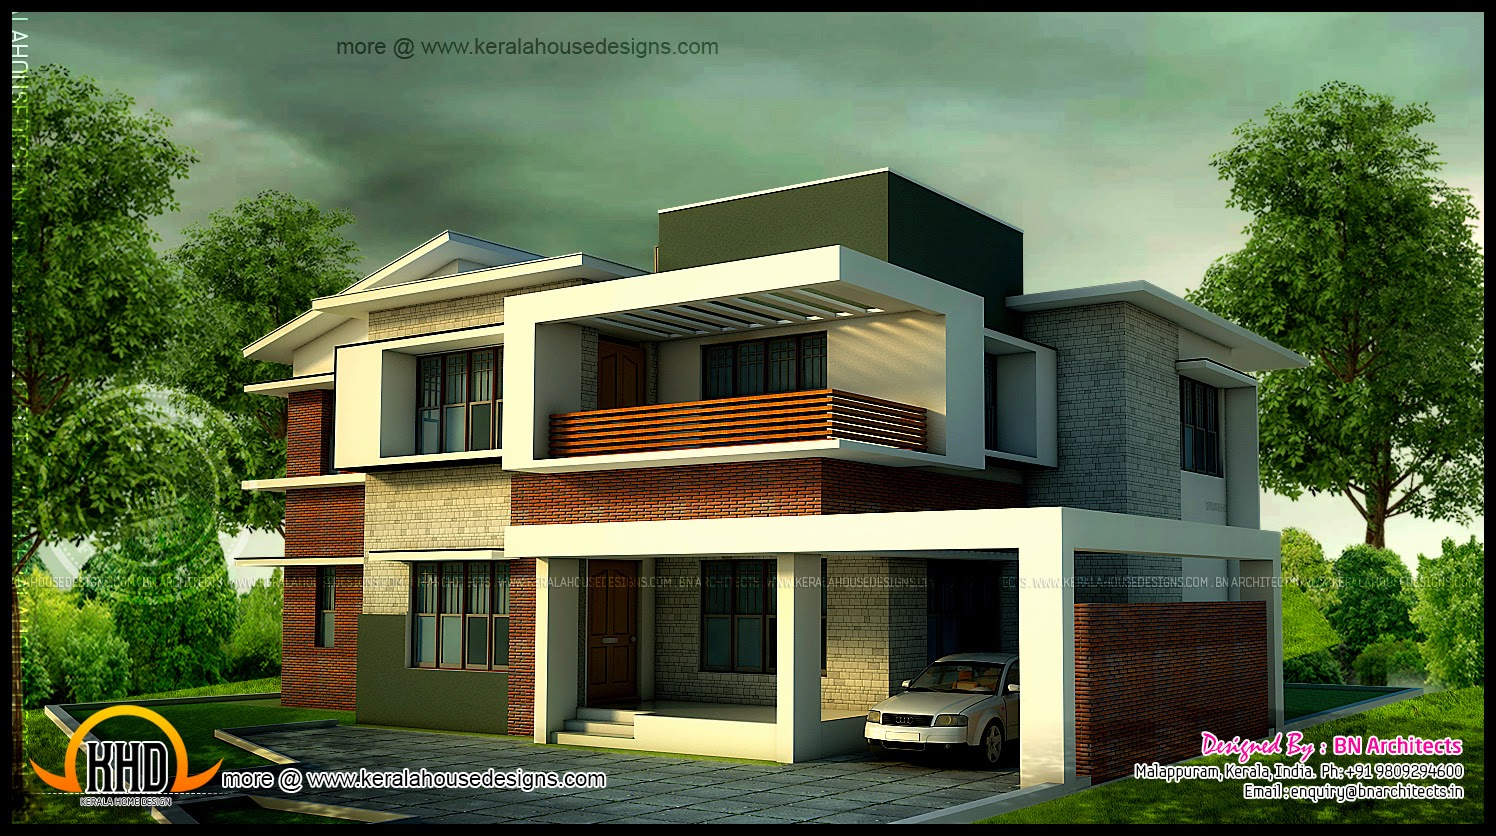 5 bedroom modern home in 3440 sq feet floor plan